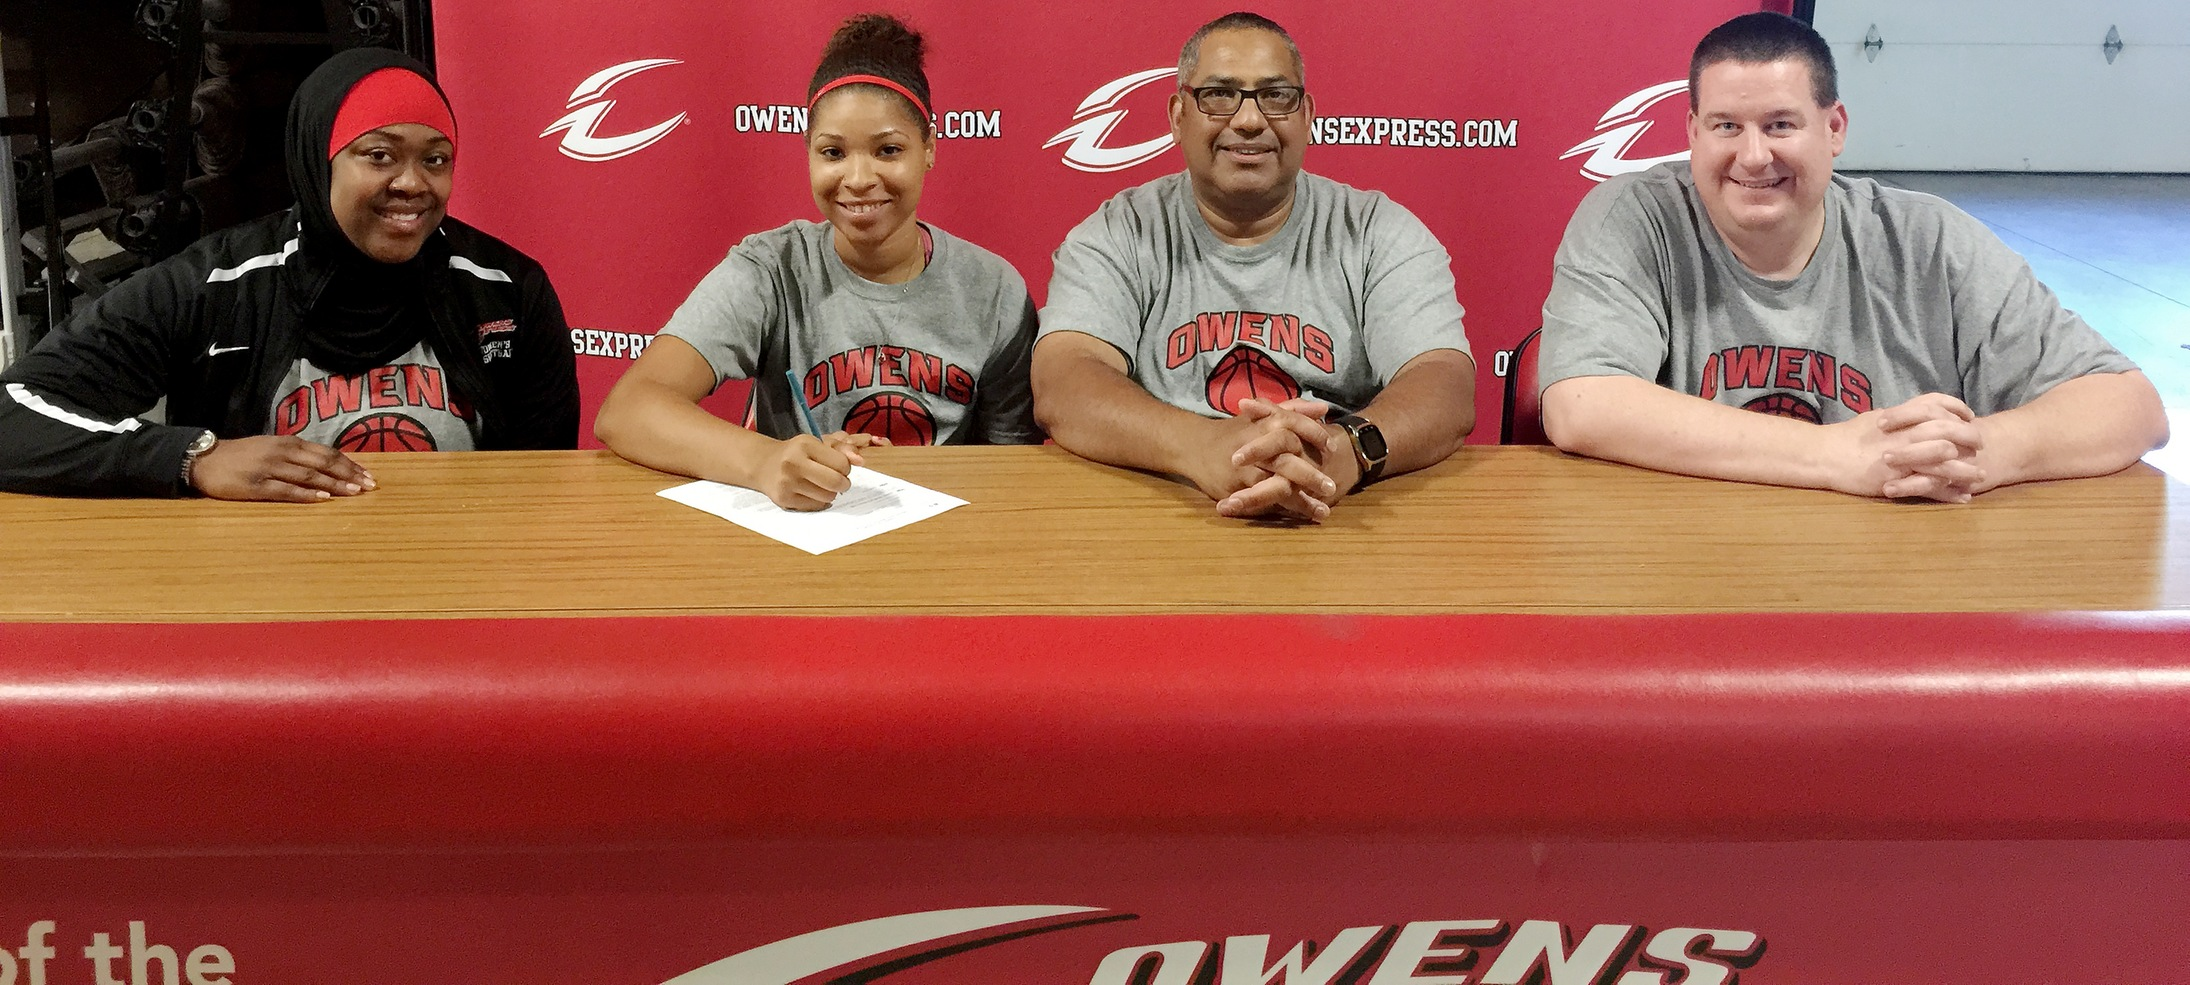 Fremont's Kiser Transfers To Owens, Will Suit Up For WBB Team In 2017-18